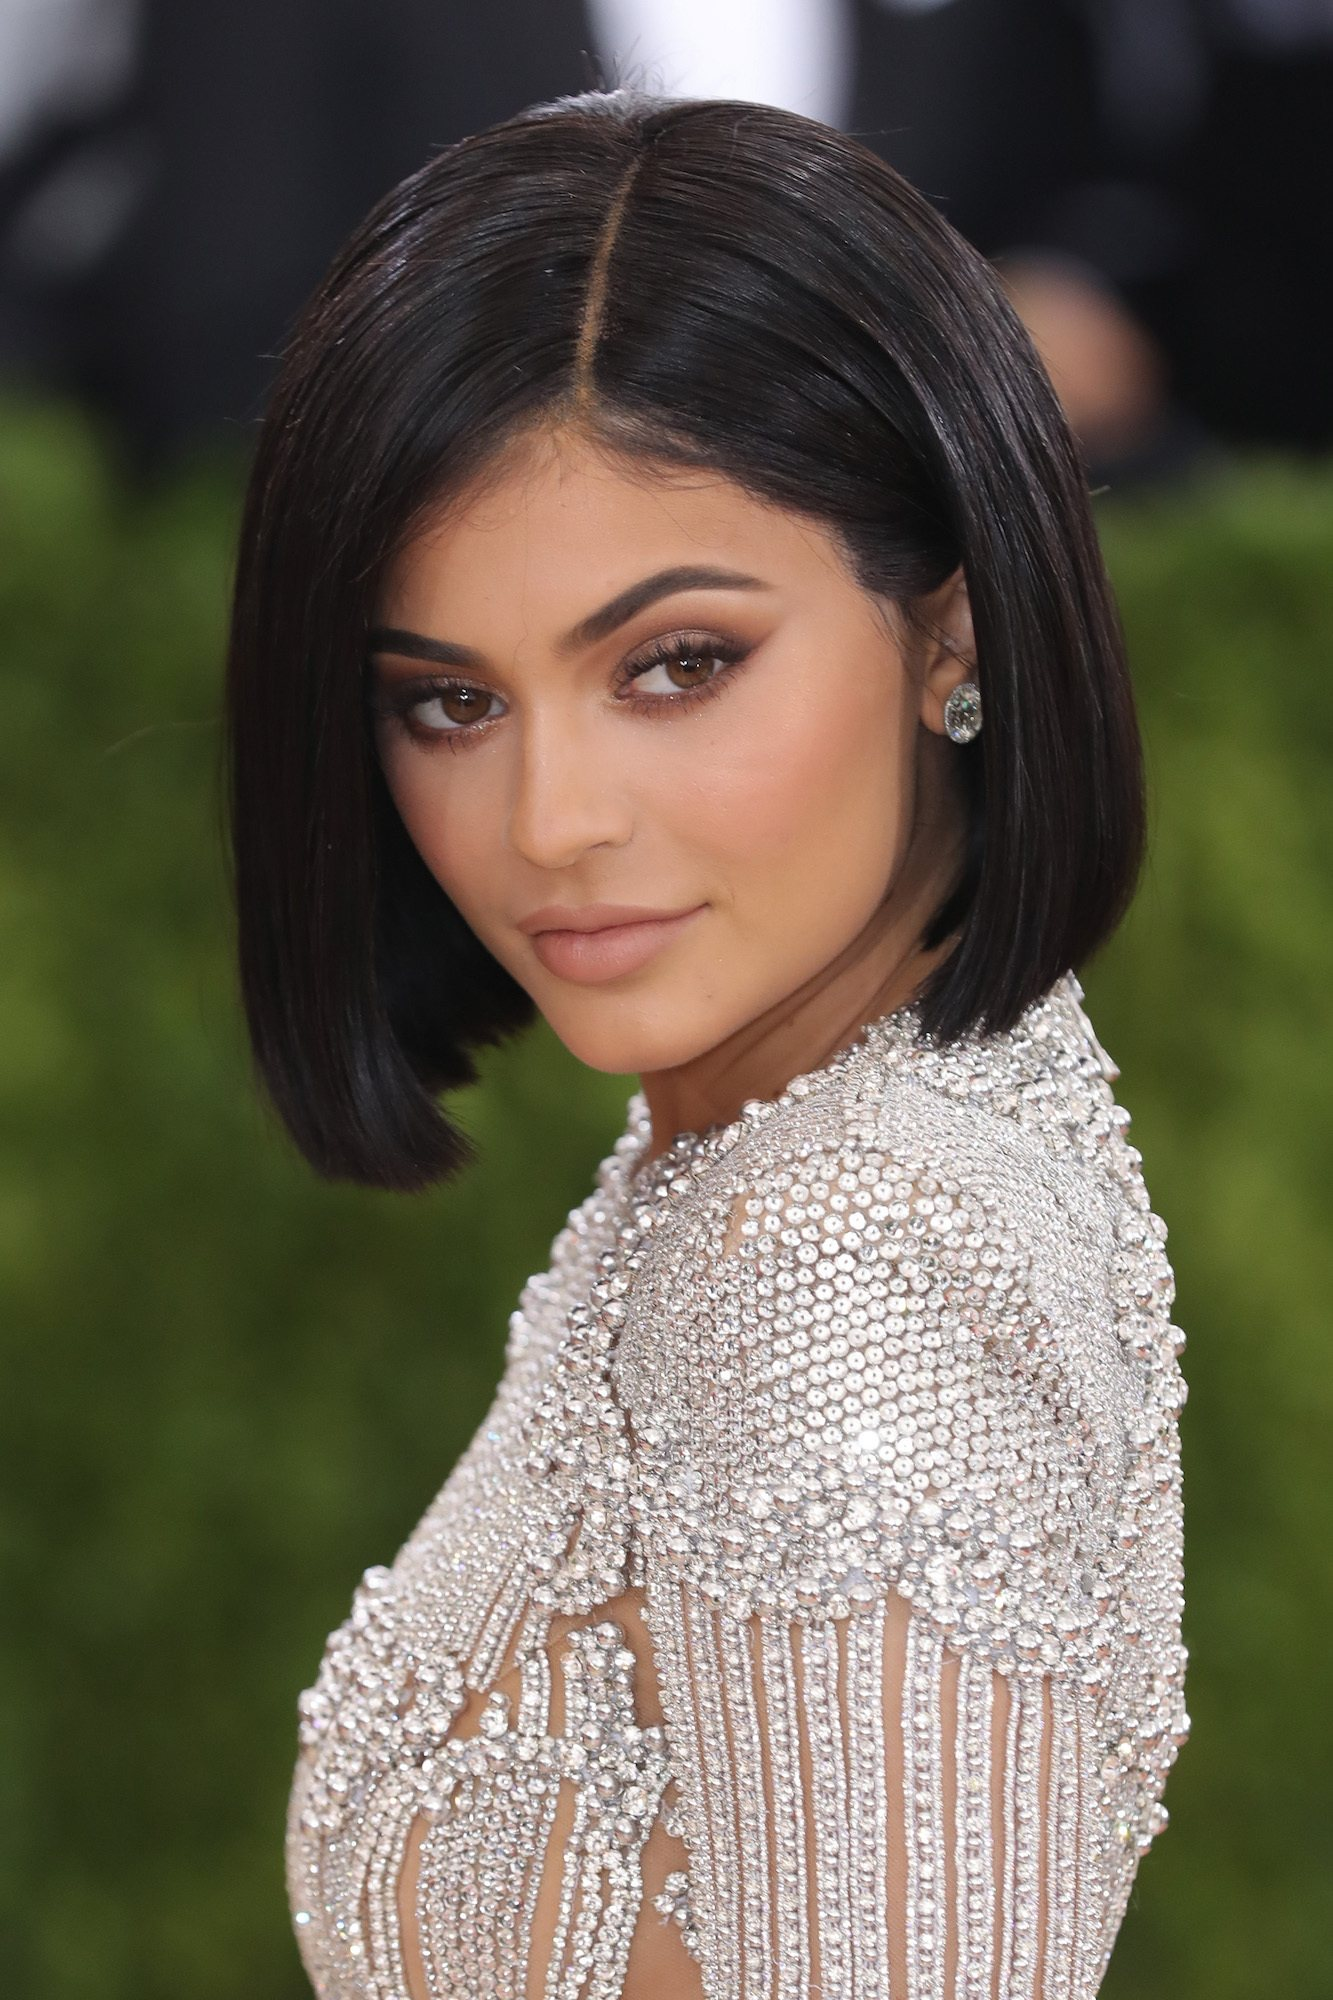 Kylie Jenner inverted bob.